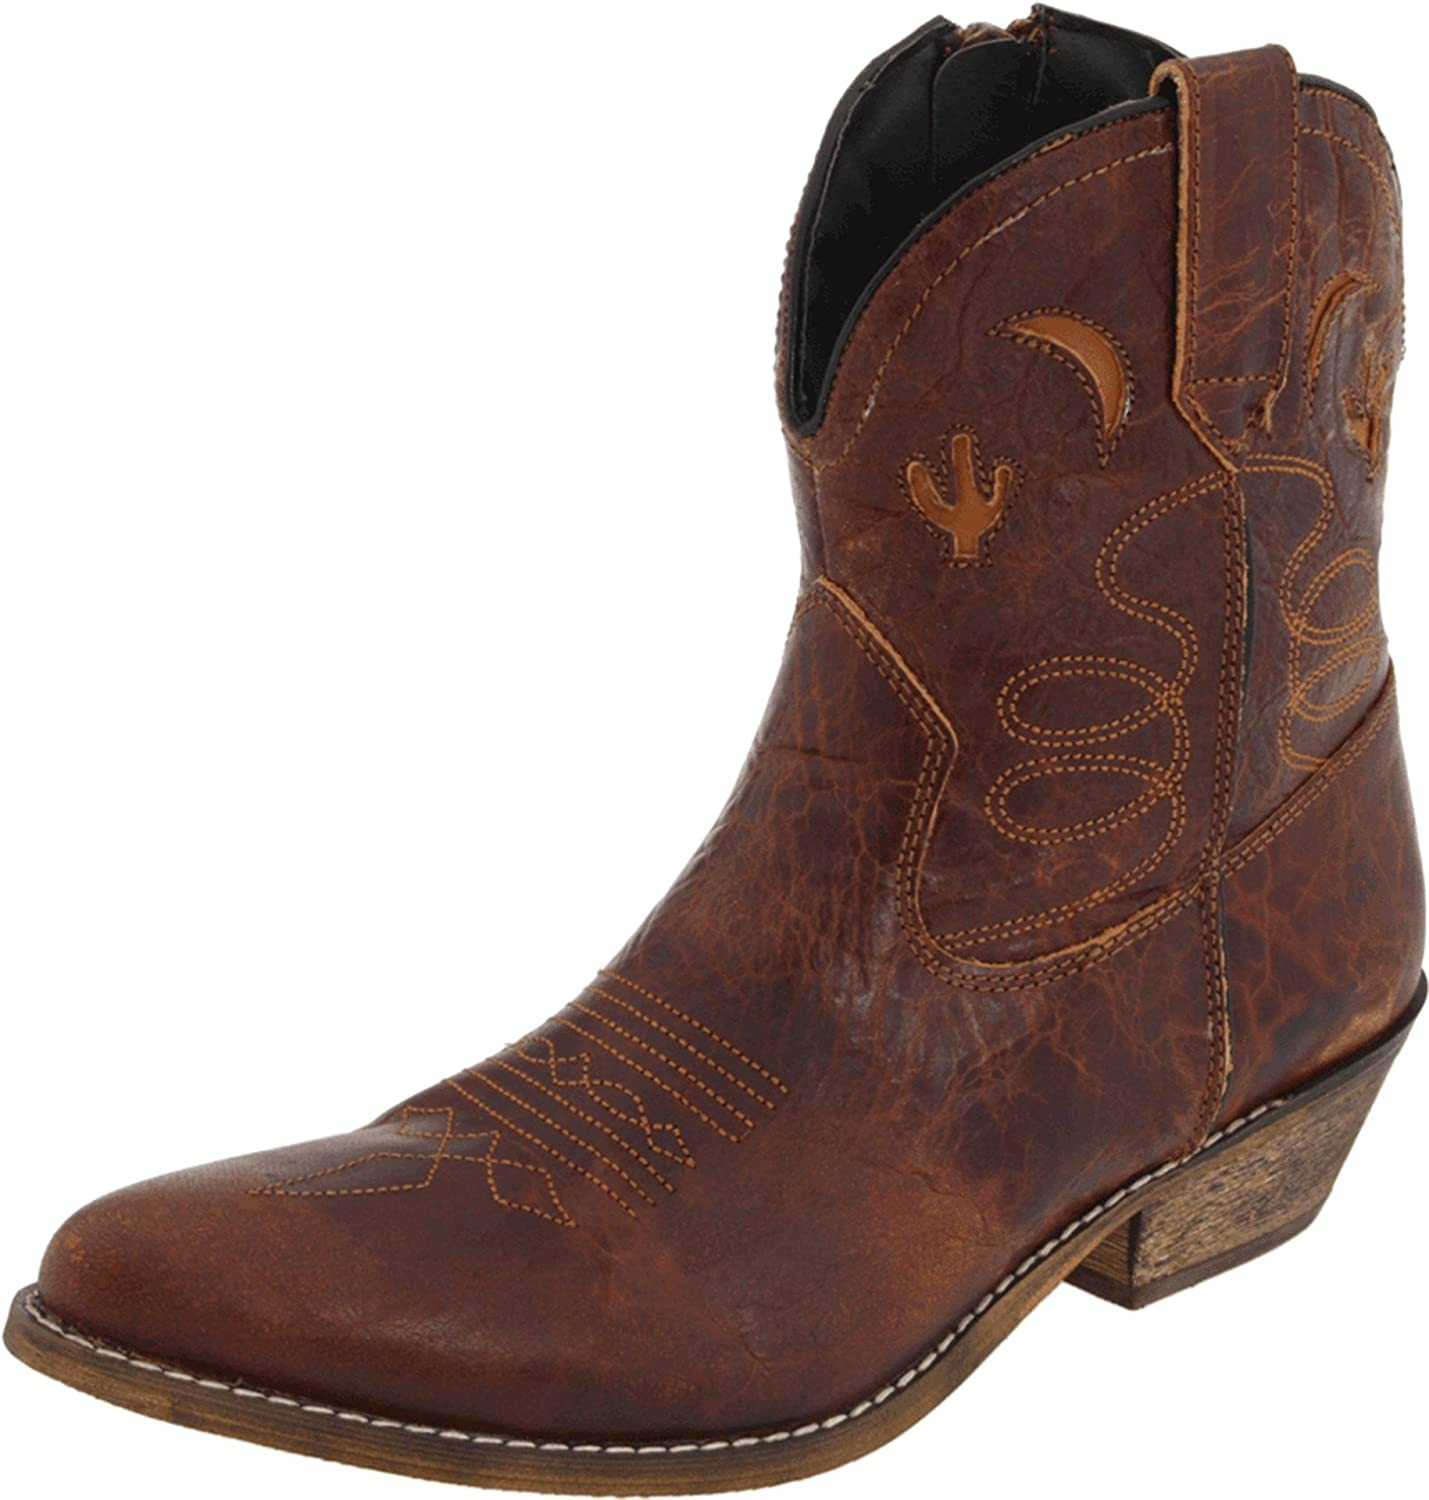 Dingo Women's Adobe Rose Leather Boots B004305G0W 6 B(M) US|Brown